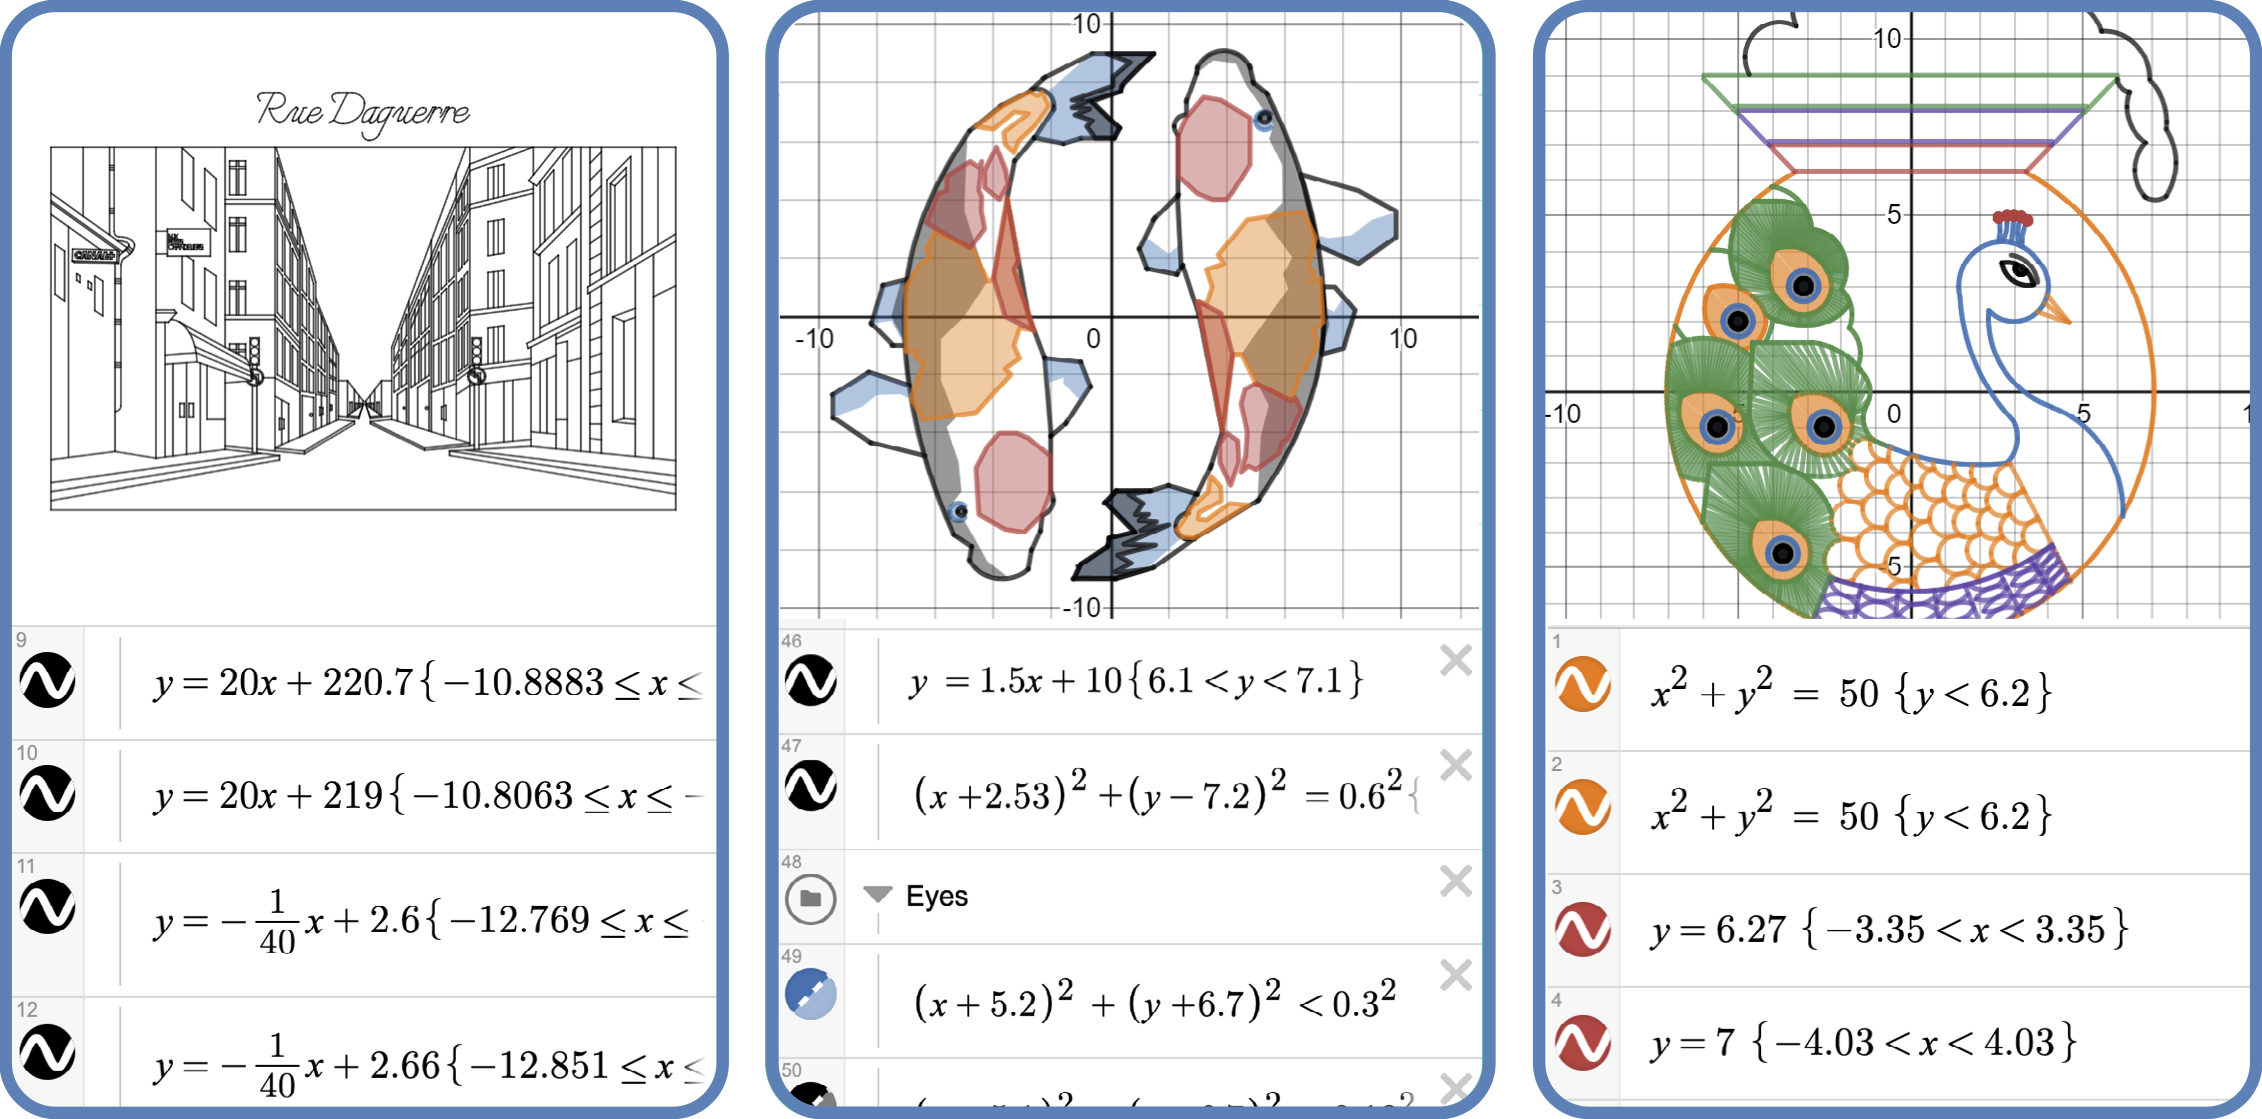 Three artistic graphs—a streetscape, two goldfish, and a peacock—together with a peek at some of the equations that generated them.)